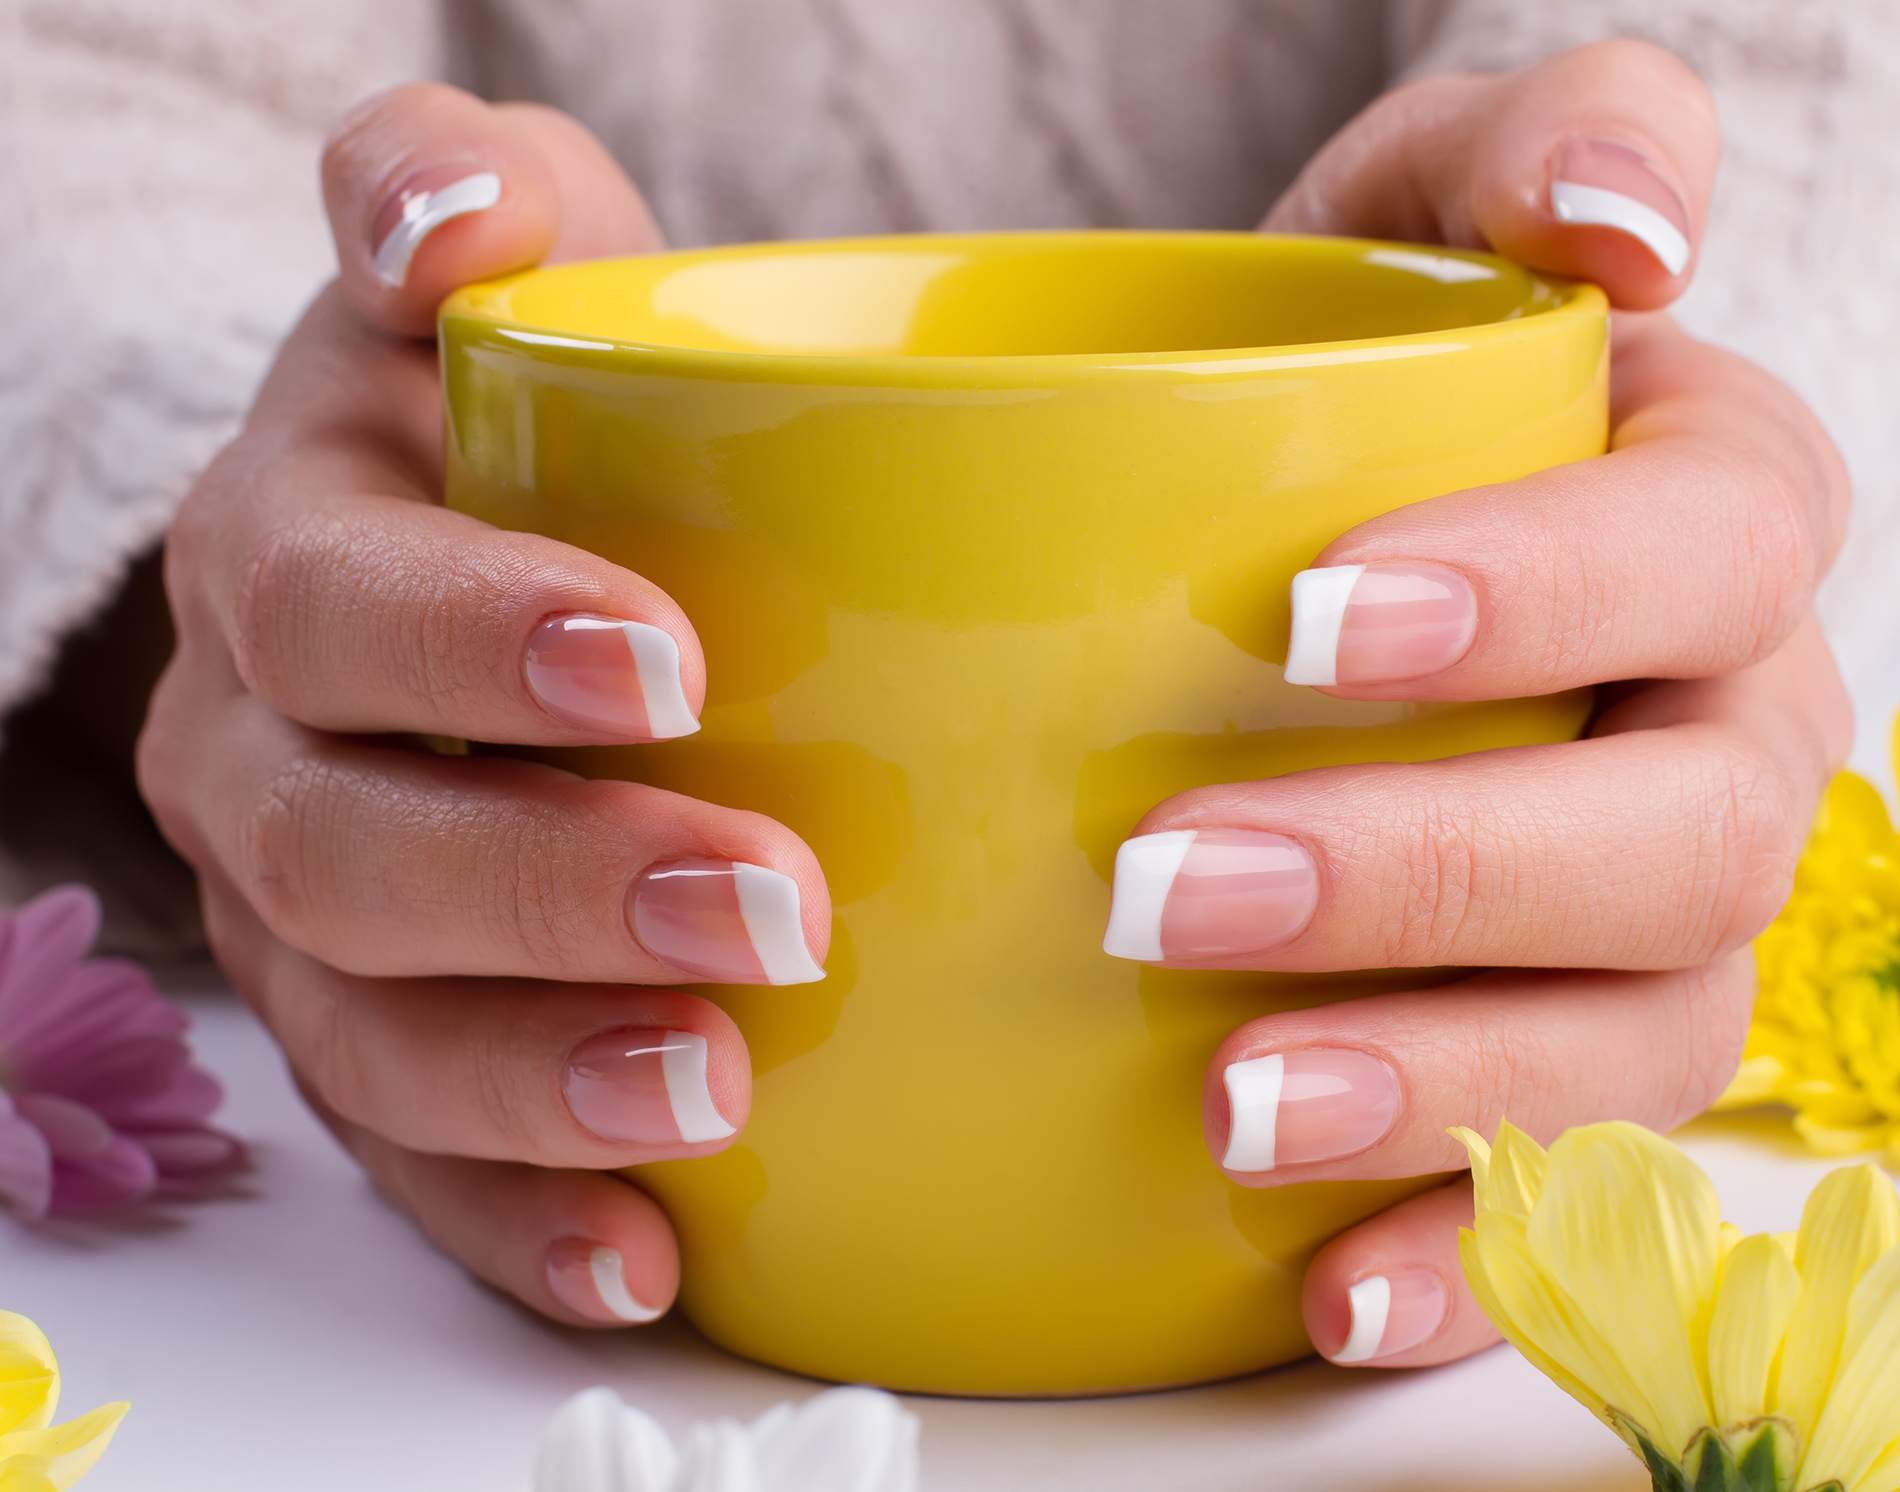 Hands holding Cup 52936